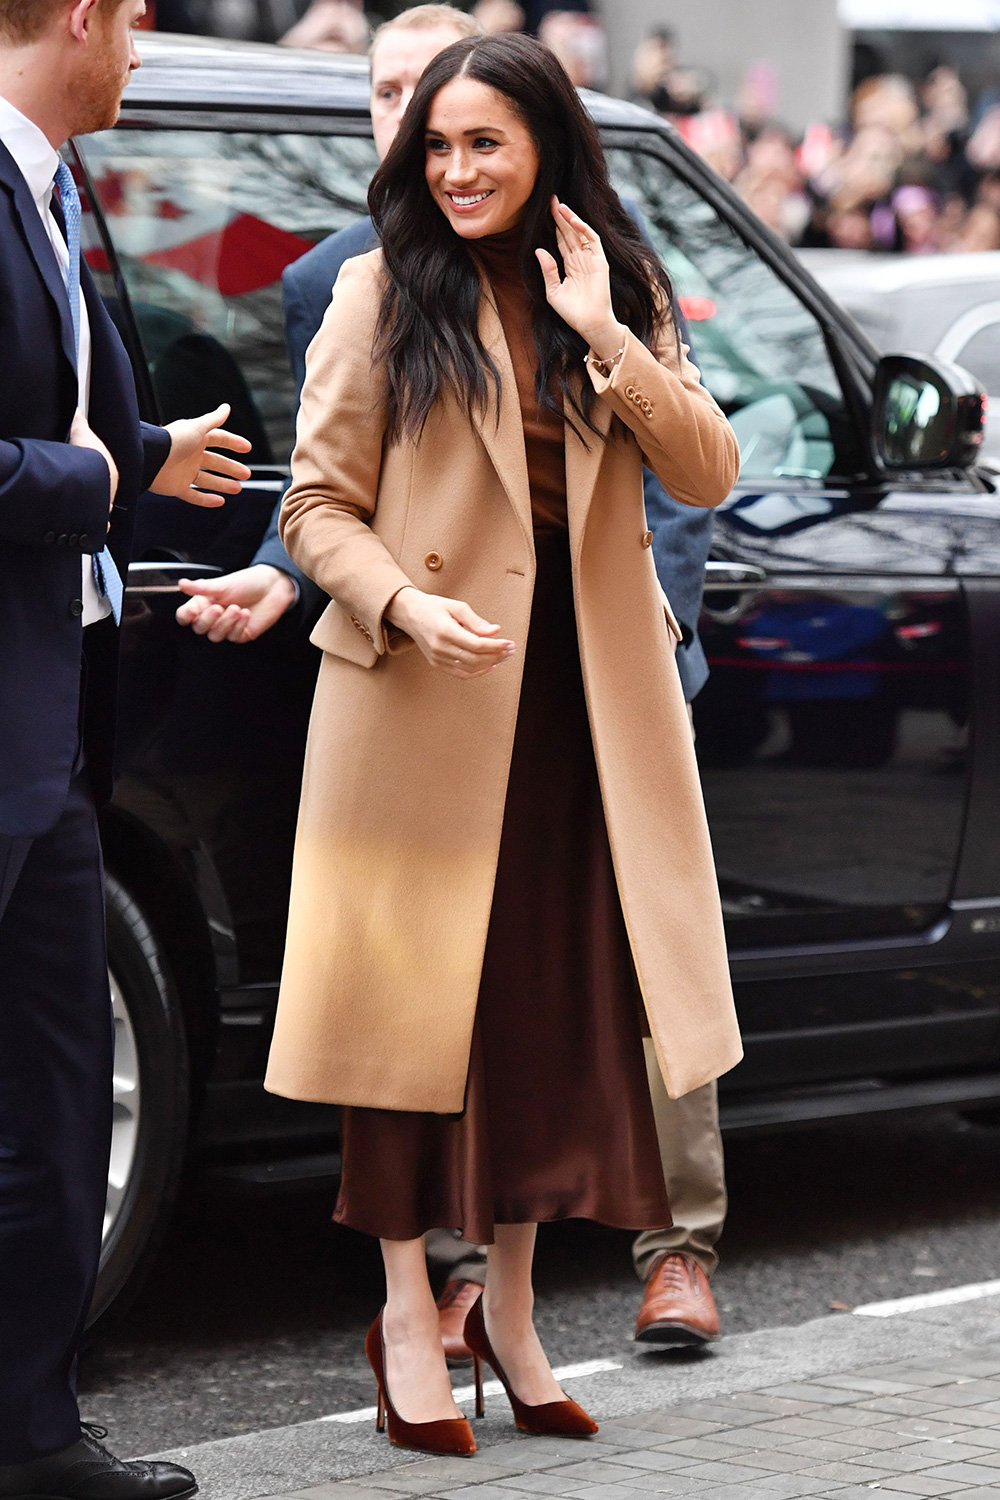 The Duke and Duchess of Sussex arriving for their visit to Canada House, central London, to meet with Canada's High Commissioner to the UK, Janice Charette, as well as staff, to thank them for the warm hospitality and support they received during their recent stay in Canada.